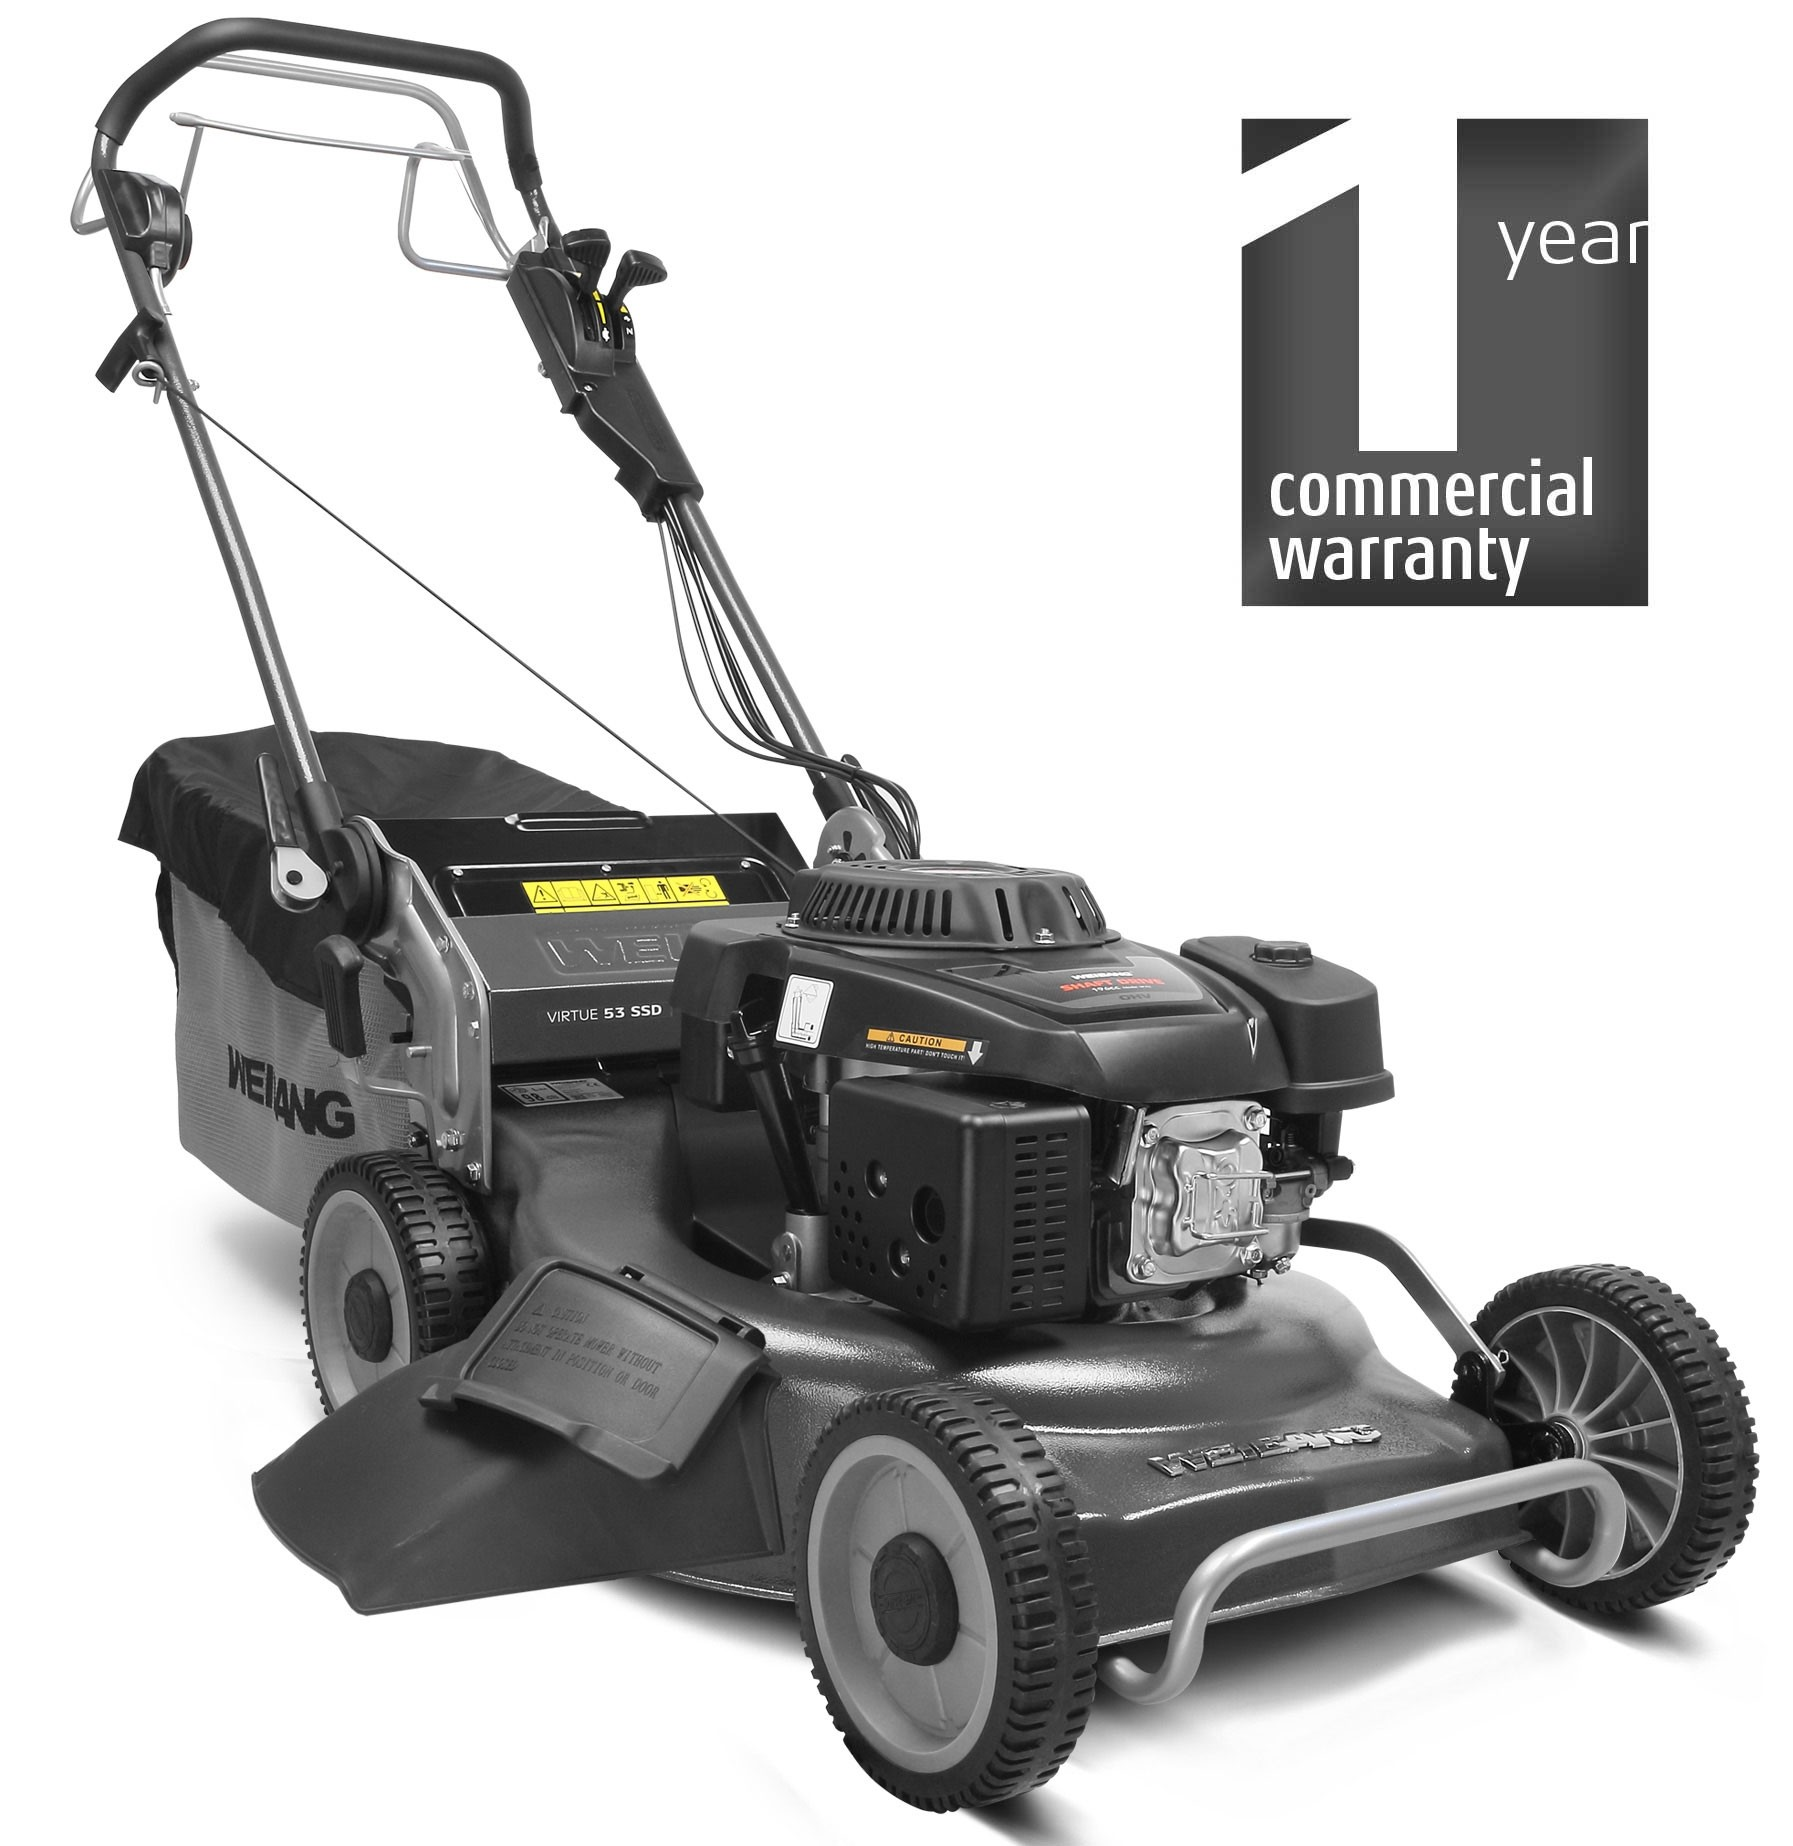 Virtue 53 SSD BBC 3-in-1 Petrol Lawnmower